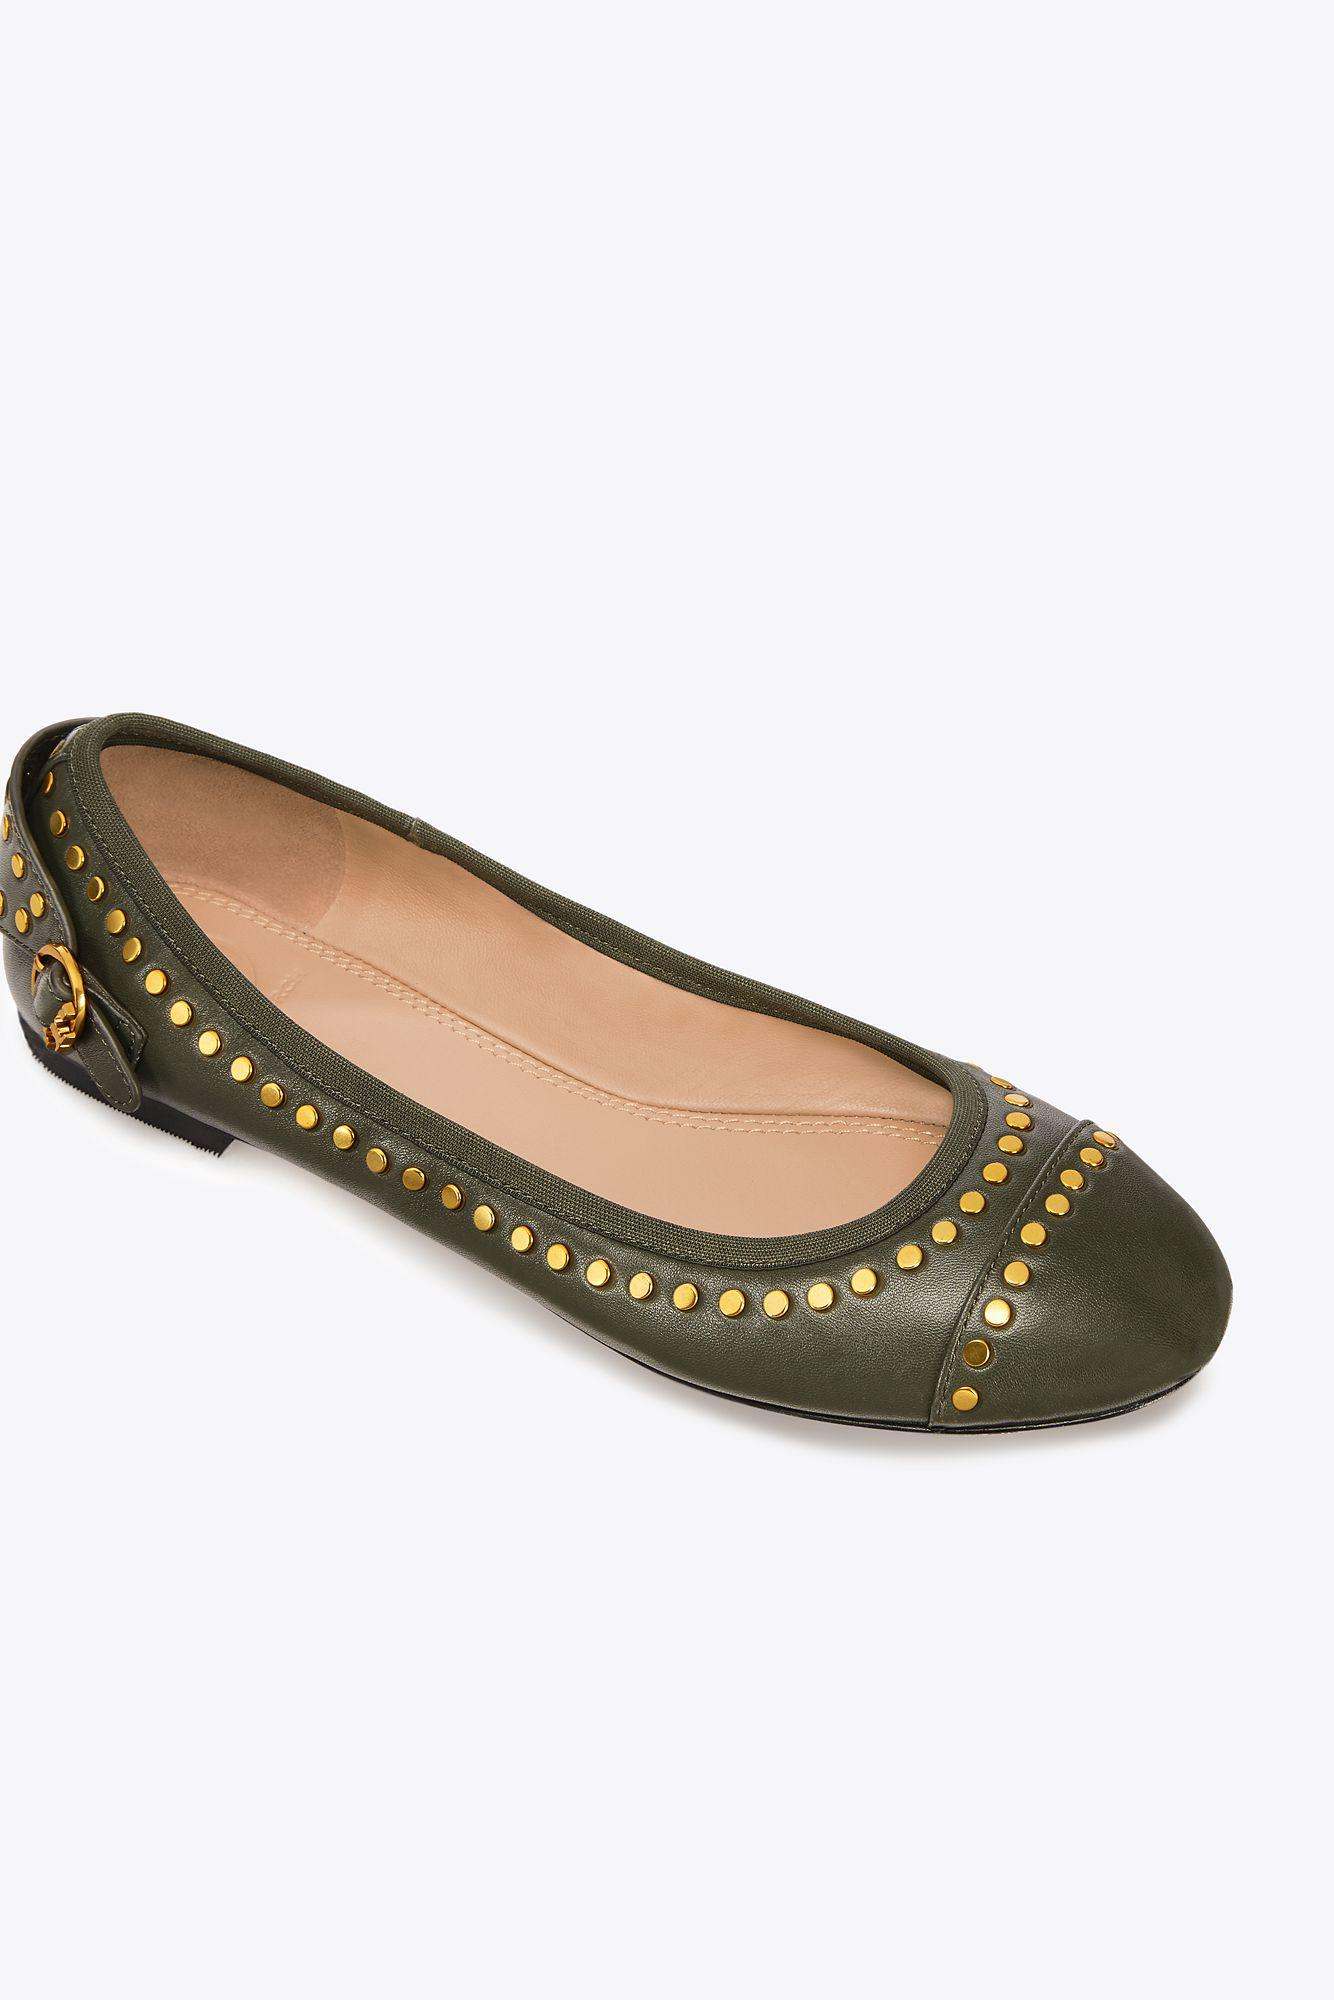 Holden studded ballet flats - Black Tory Burch Y5zVAo